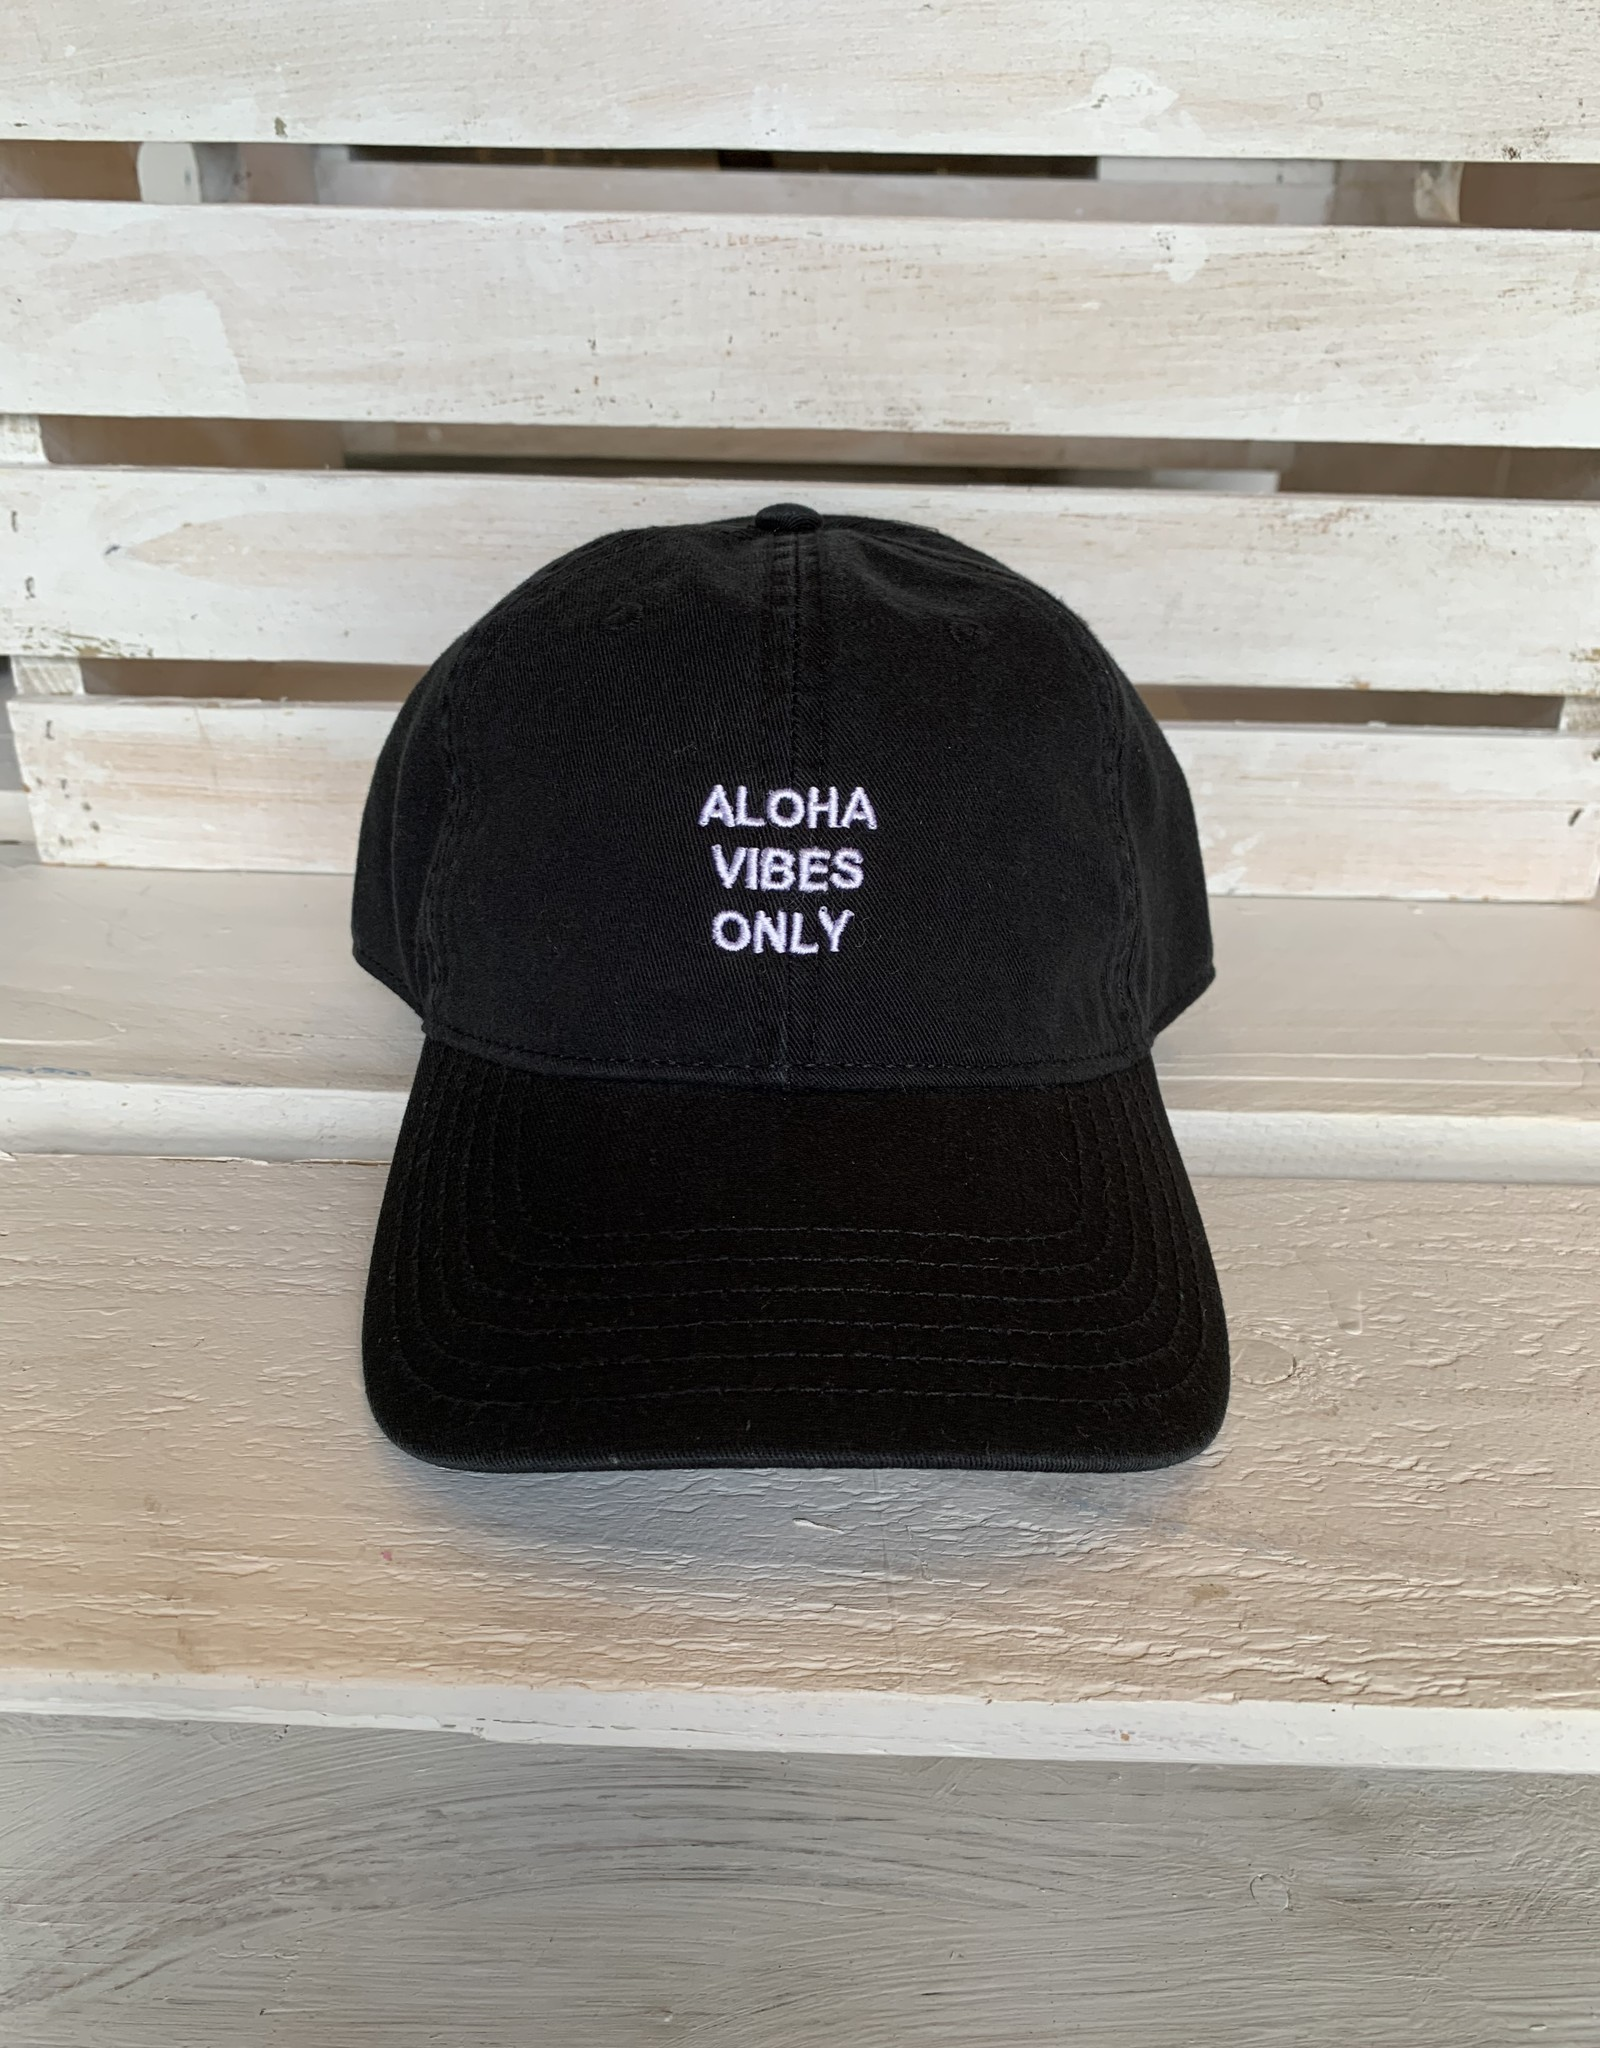 UIS UIS - Aloha Vibes Only Cap - May/2021